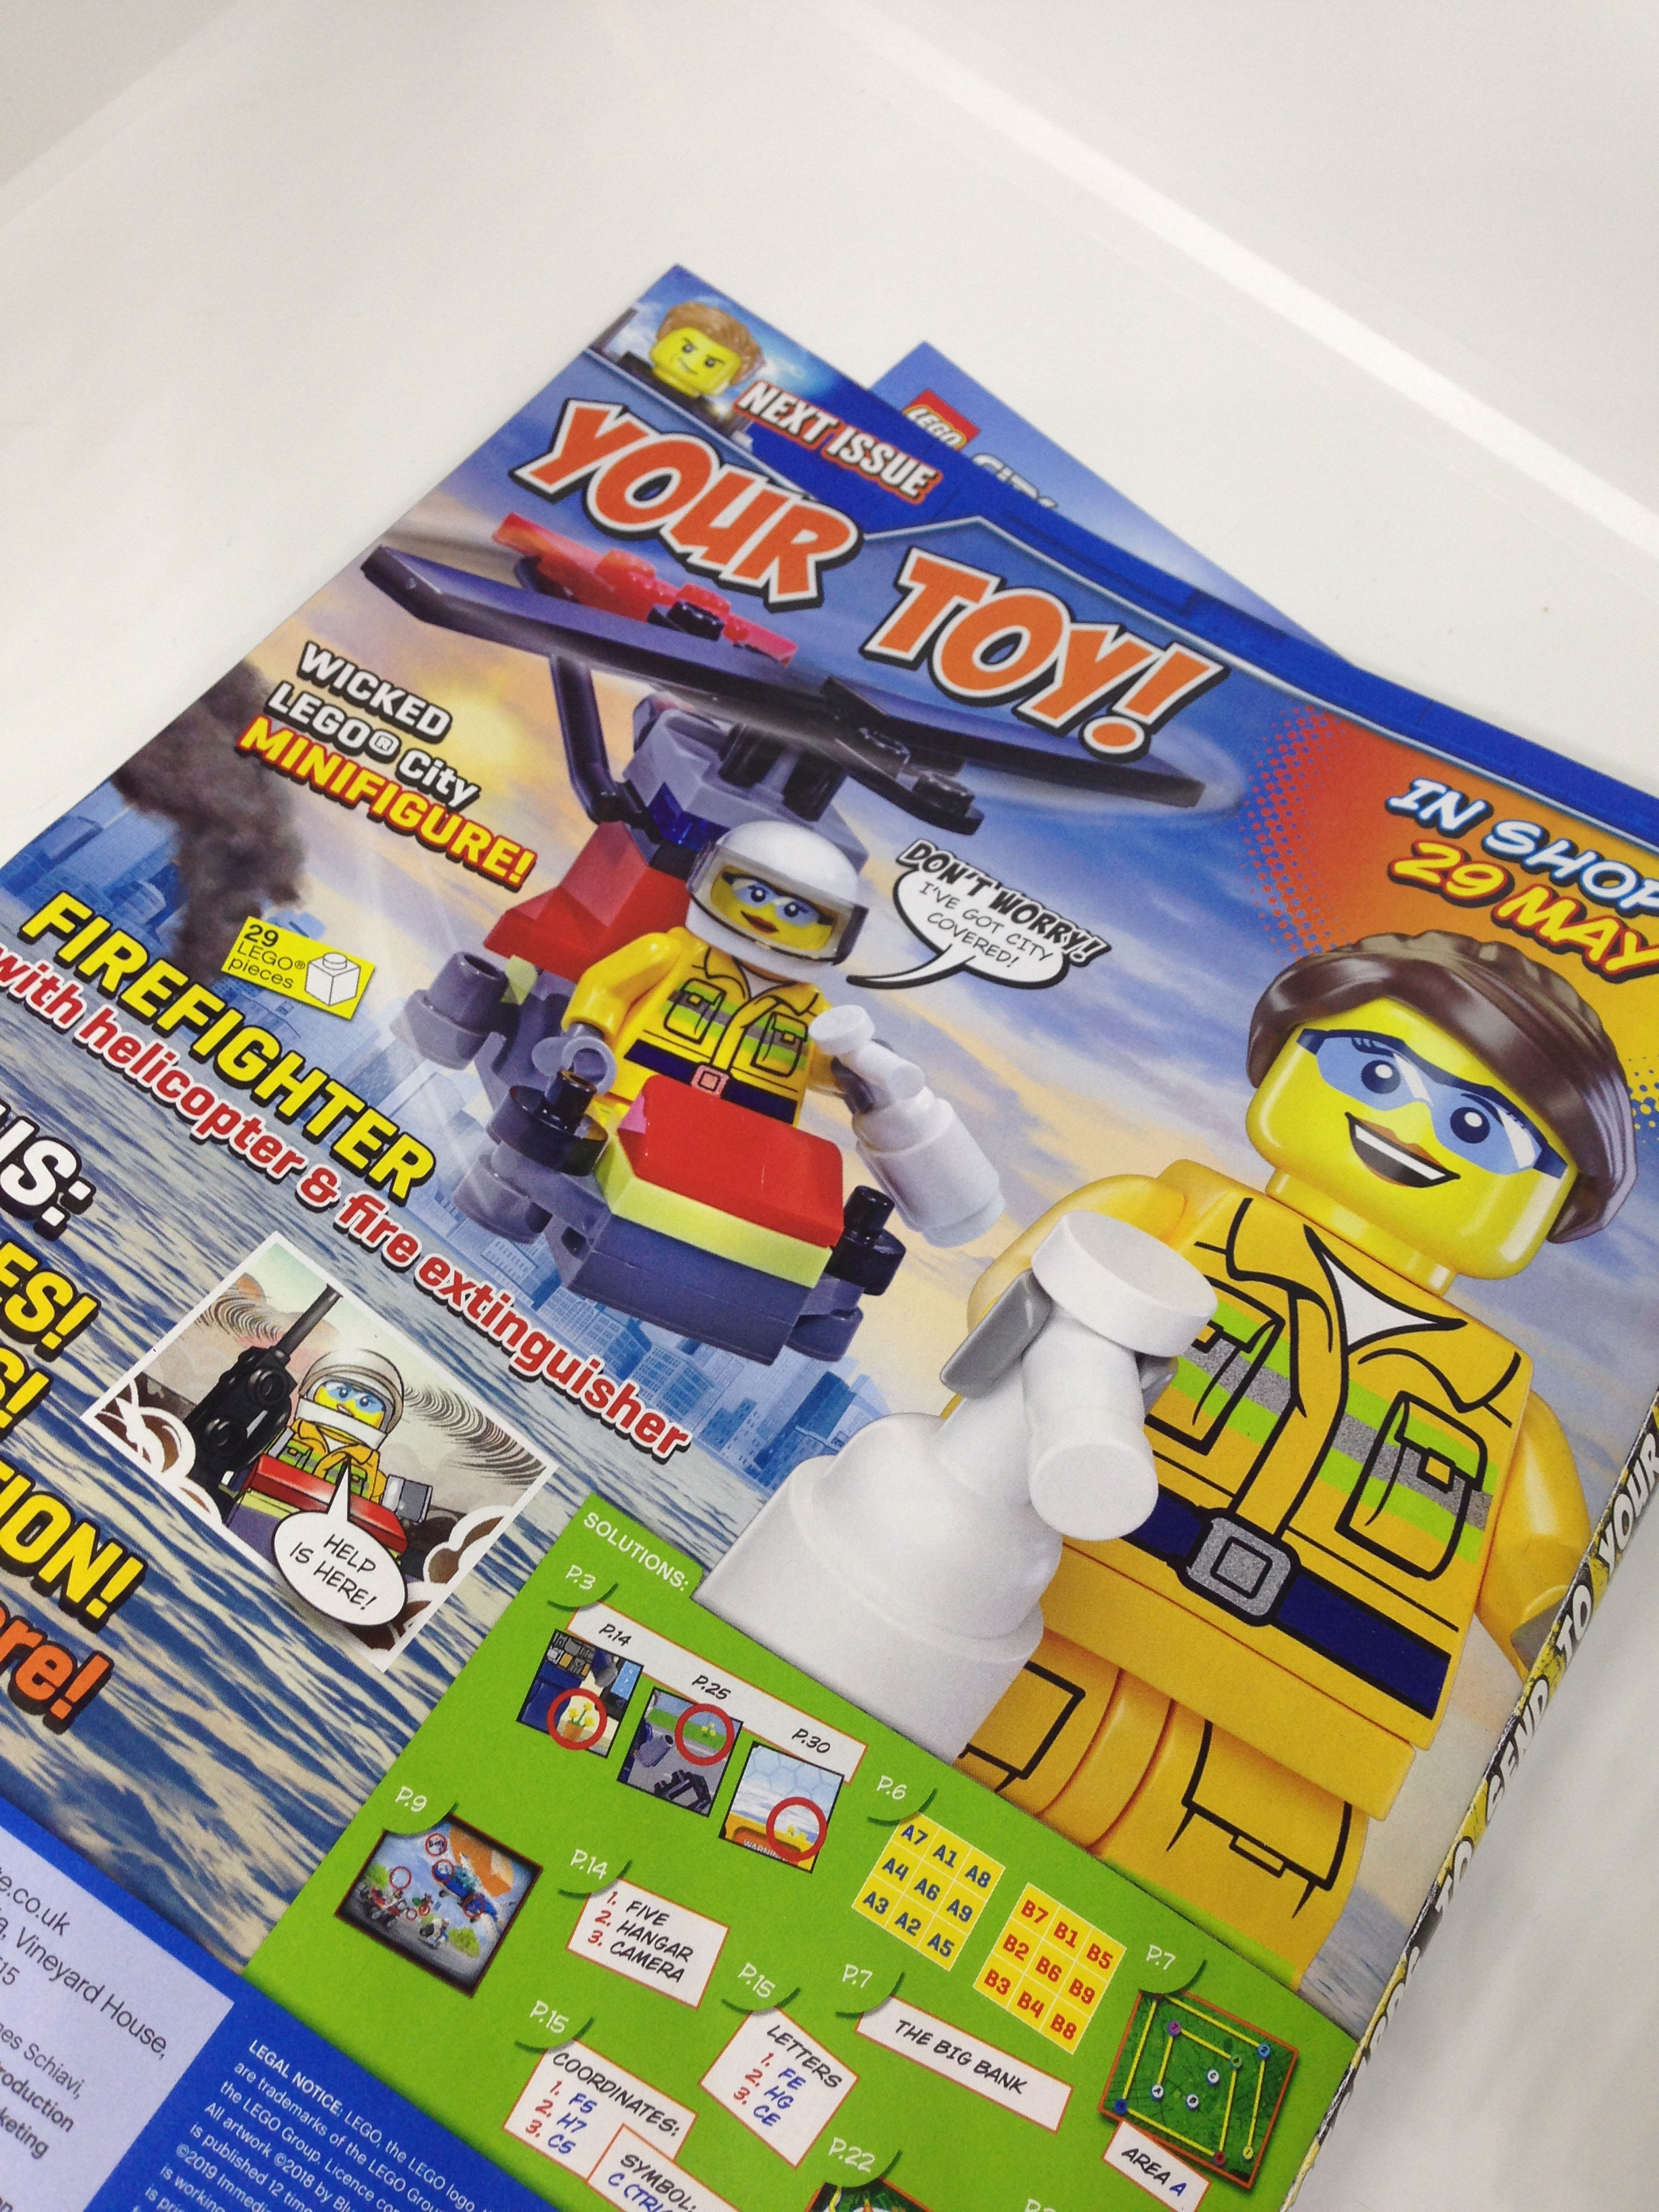 Lego City Magazine Issue   15 free gift